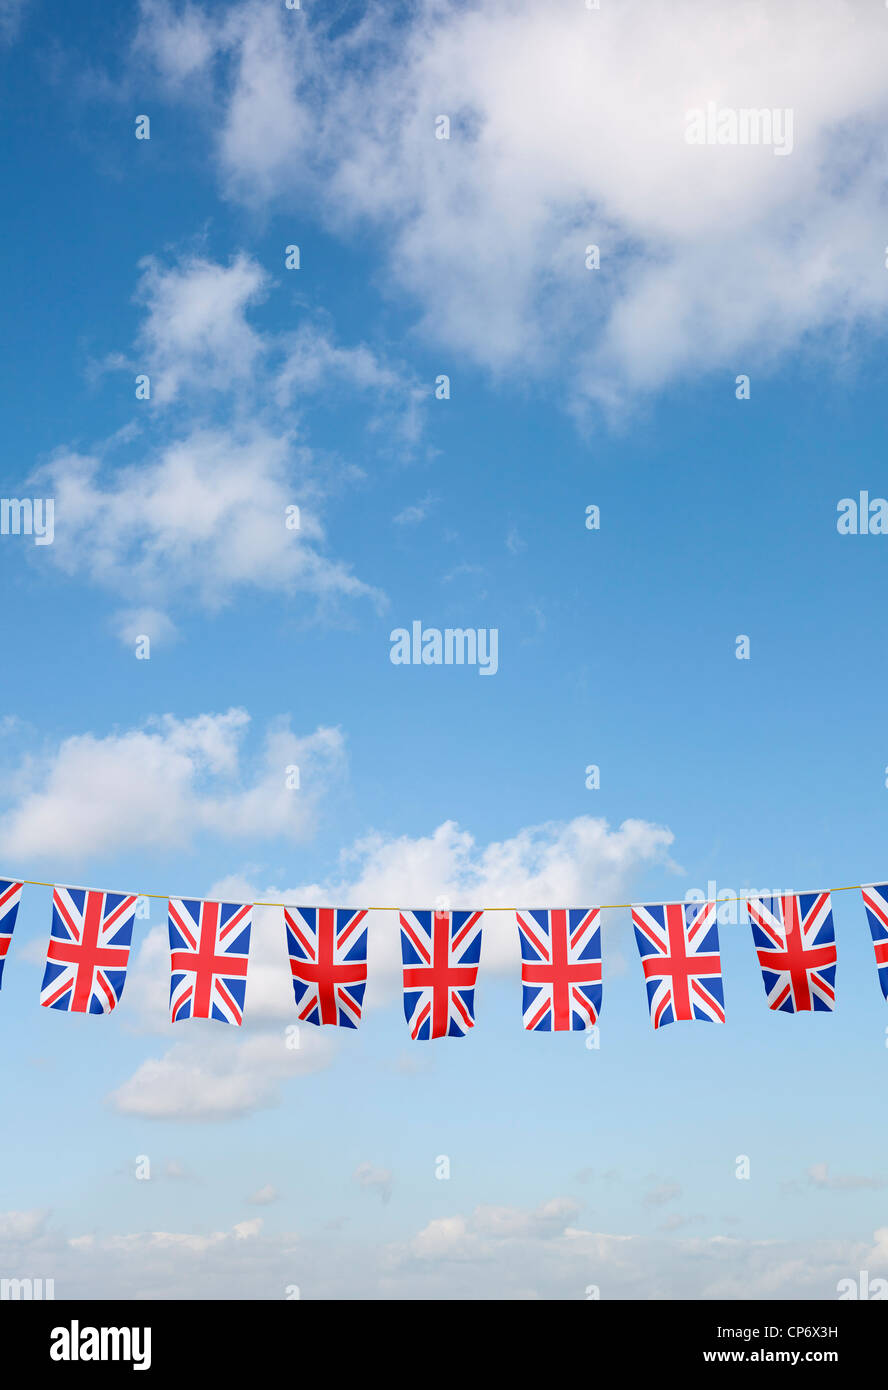 Bunting with Union Jack UK flag against blue sky - Stock Image